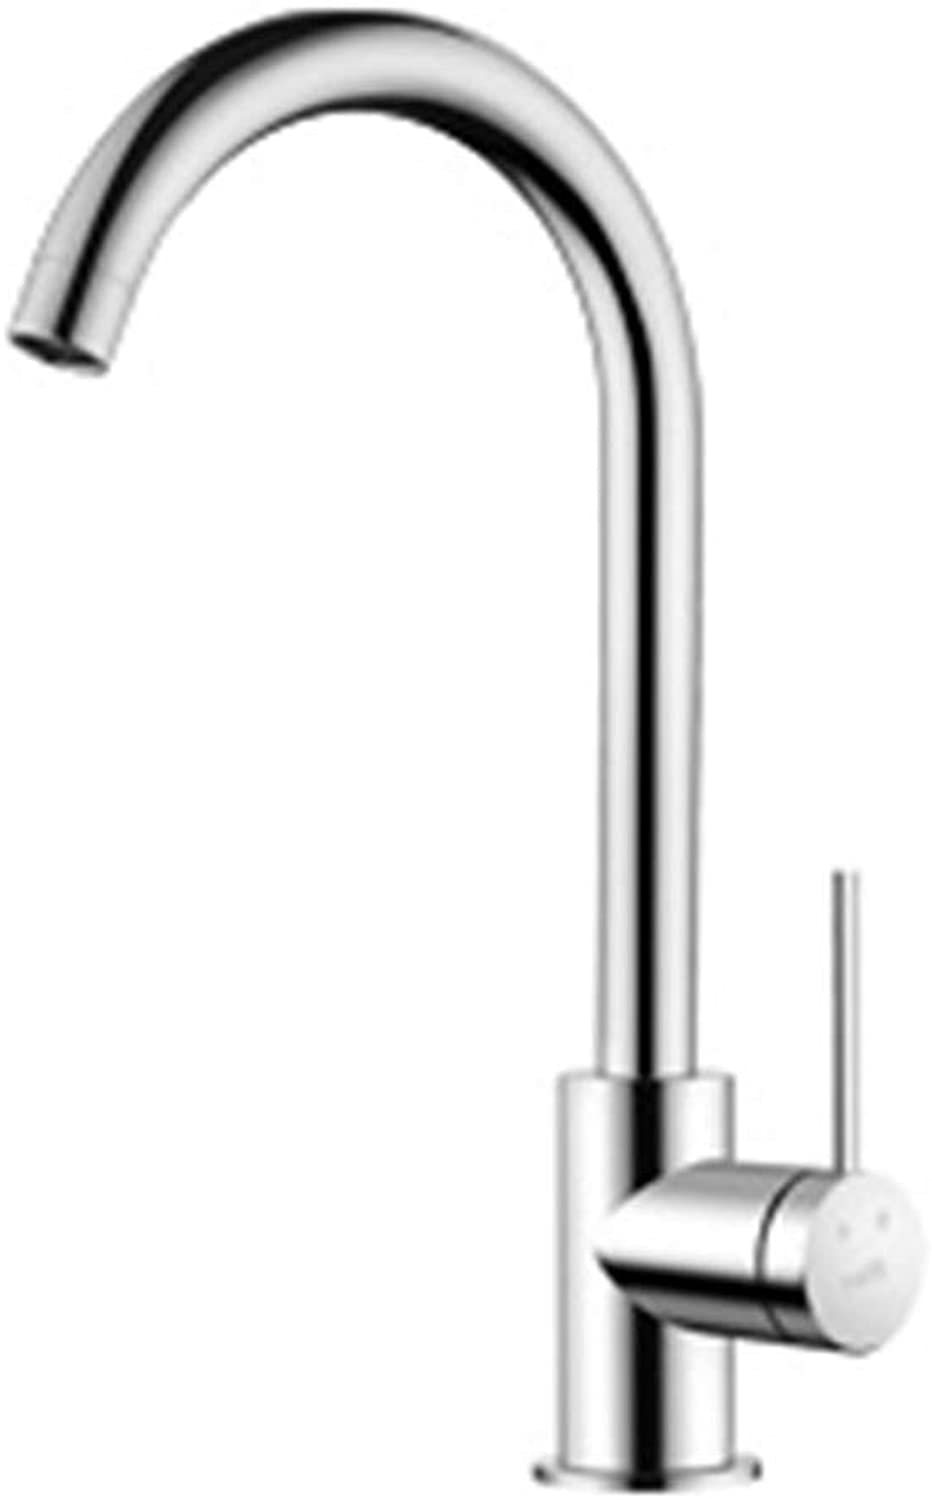 BAIF NNHHBNR Waschbecken Waschbecken Waschbecken 304 Edelstahl Küchenarmatur Pull Typ Hot and Cold Home, C